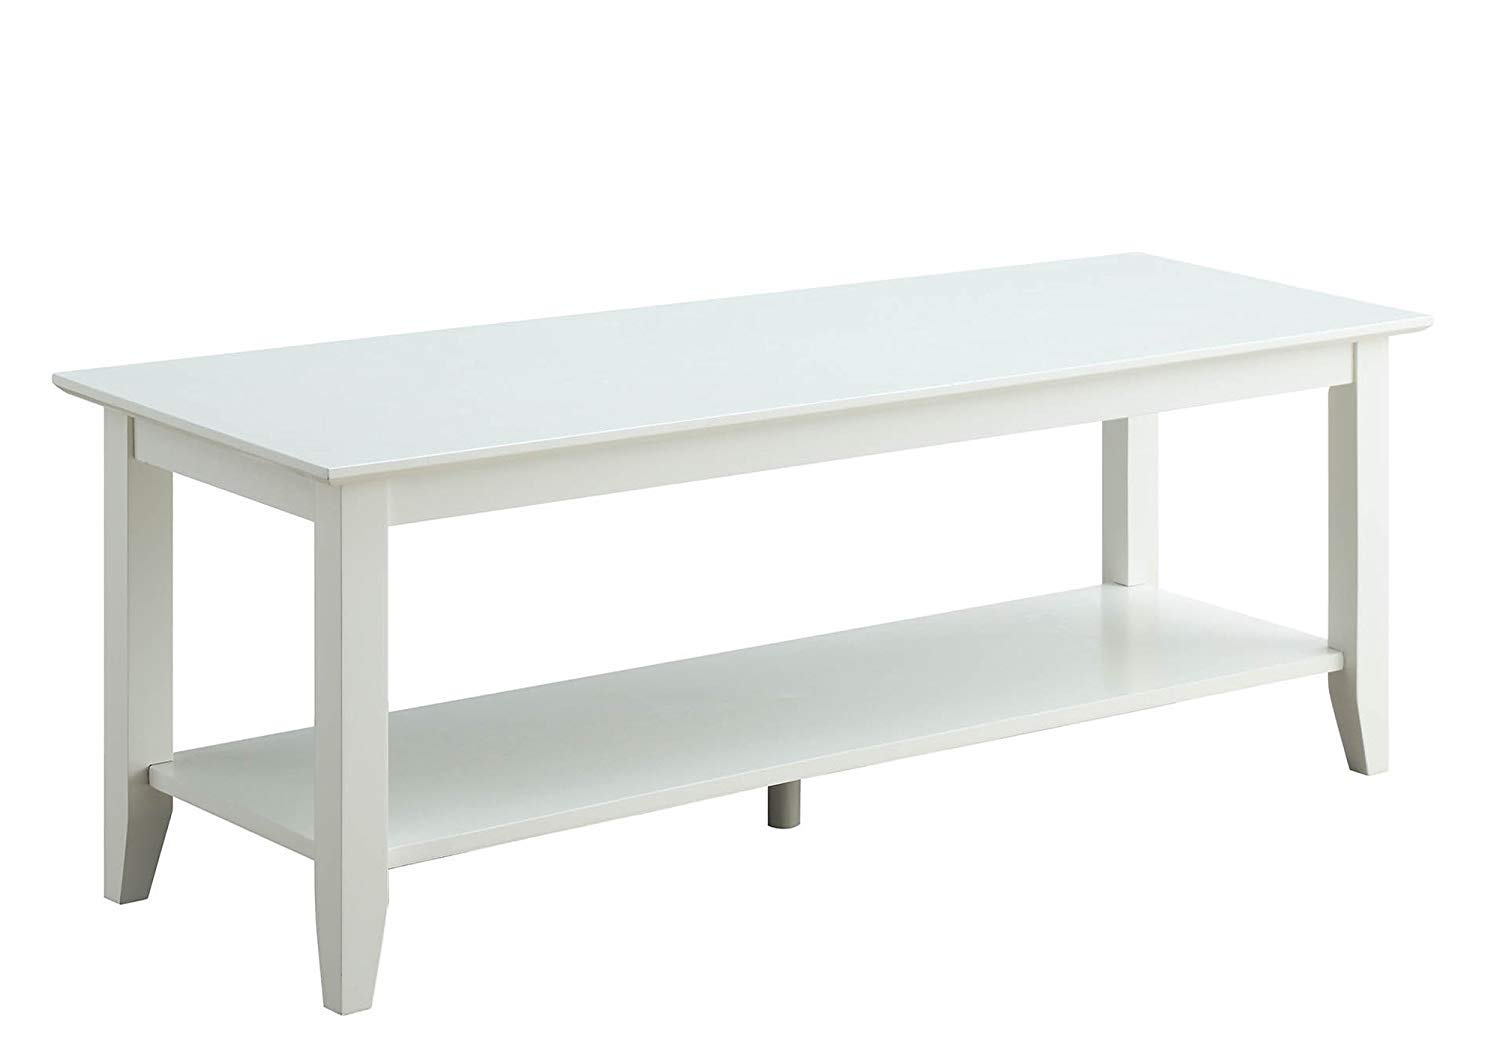 Convenience Concepts American Heritage Coffee Table with Shelf, White